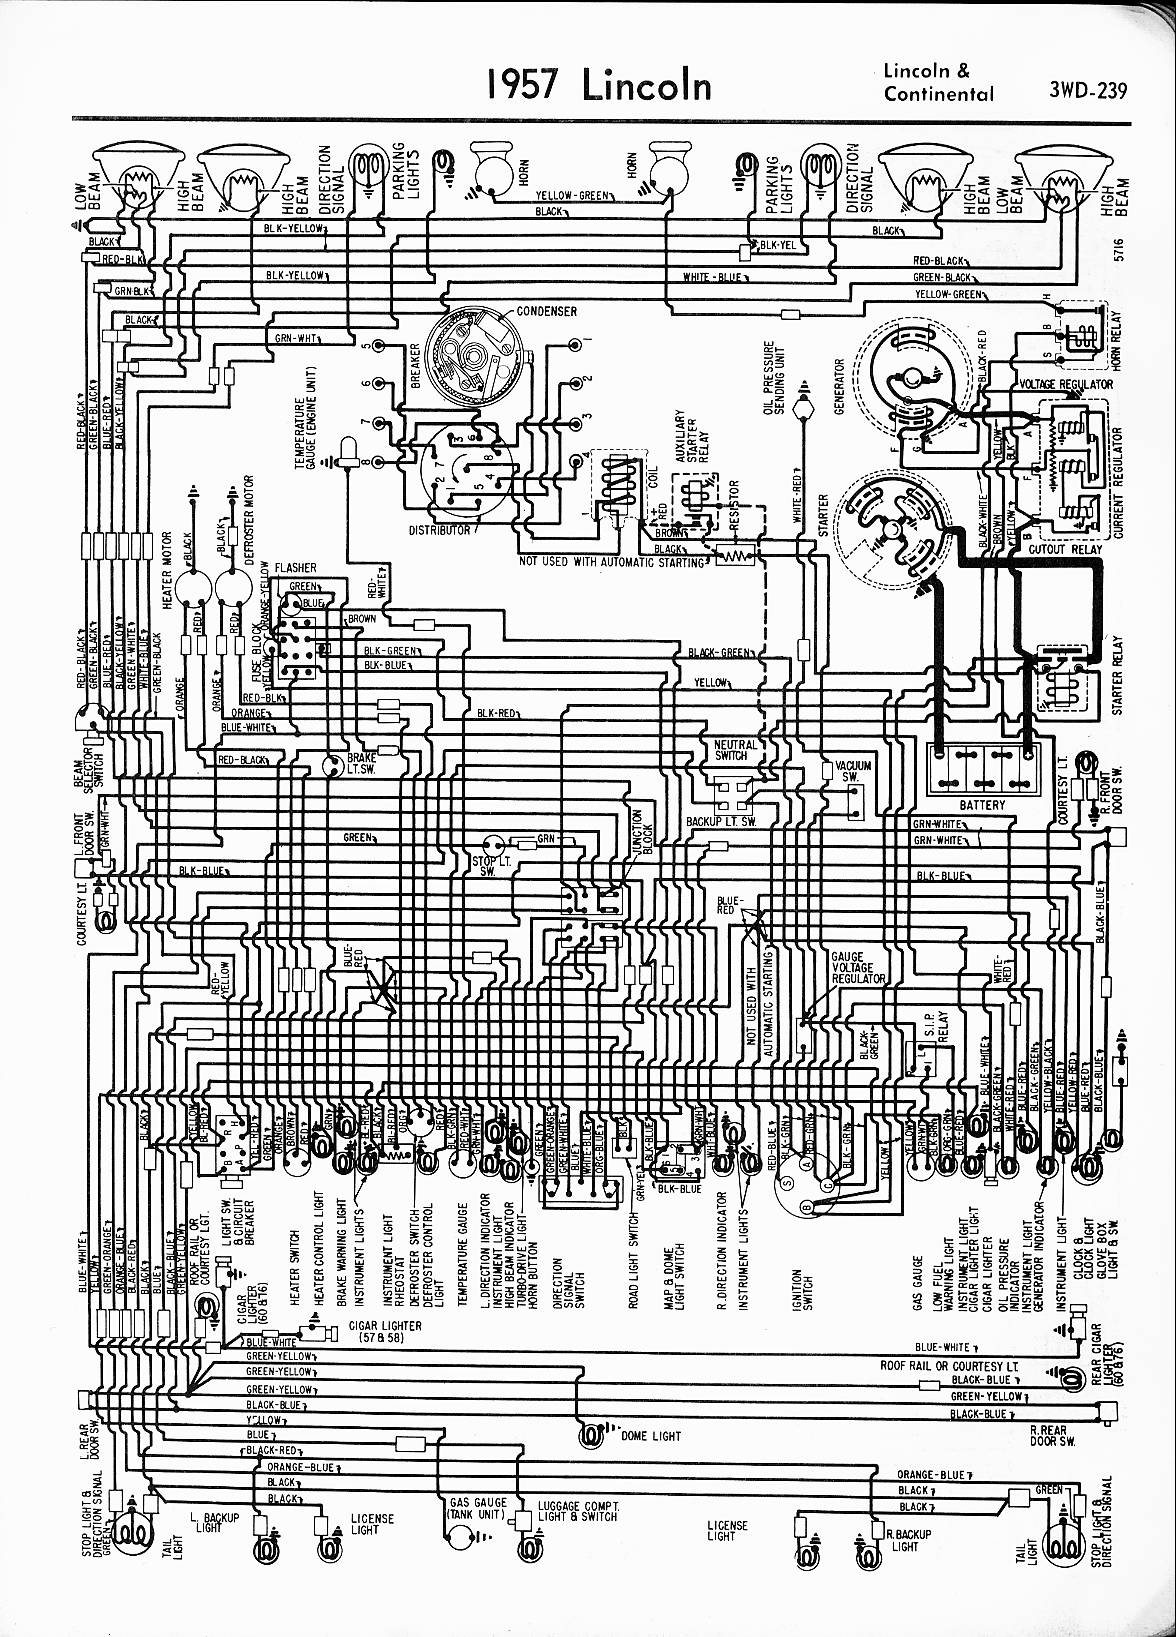 MWireLin_Lin57_z3wd 239z_001 lincoln wiring diagrams 1957 1965 lincoln wiring diagrams at panicattacktreatment.co